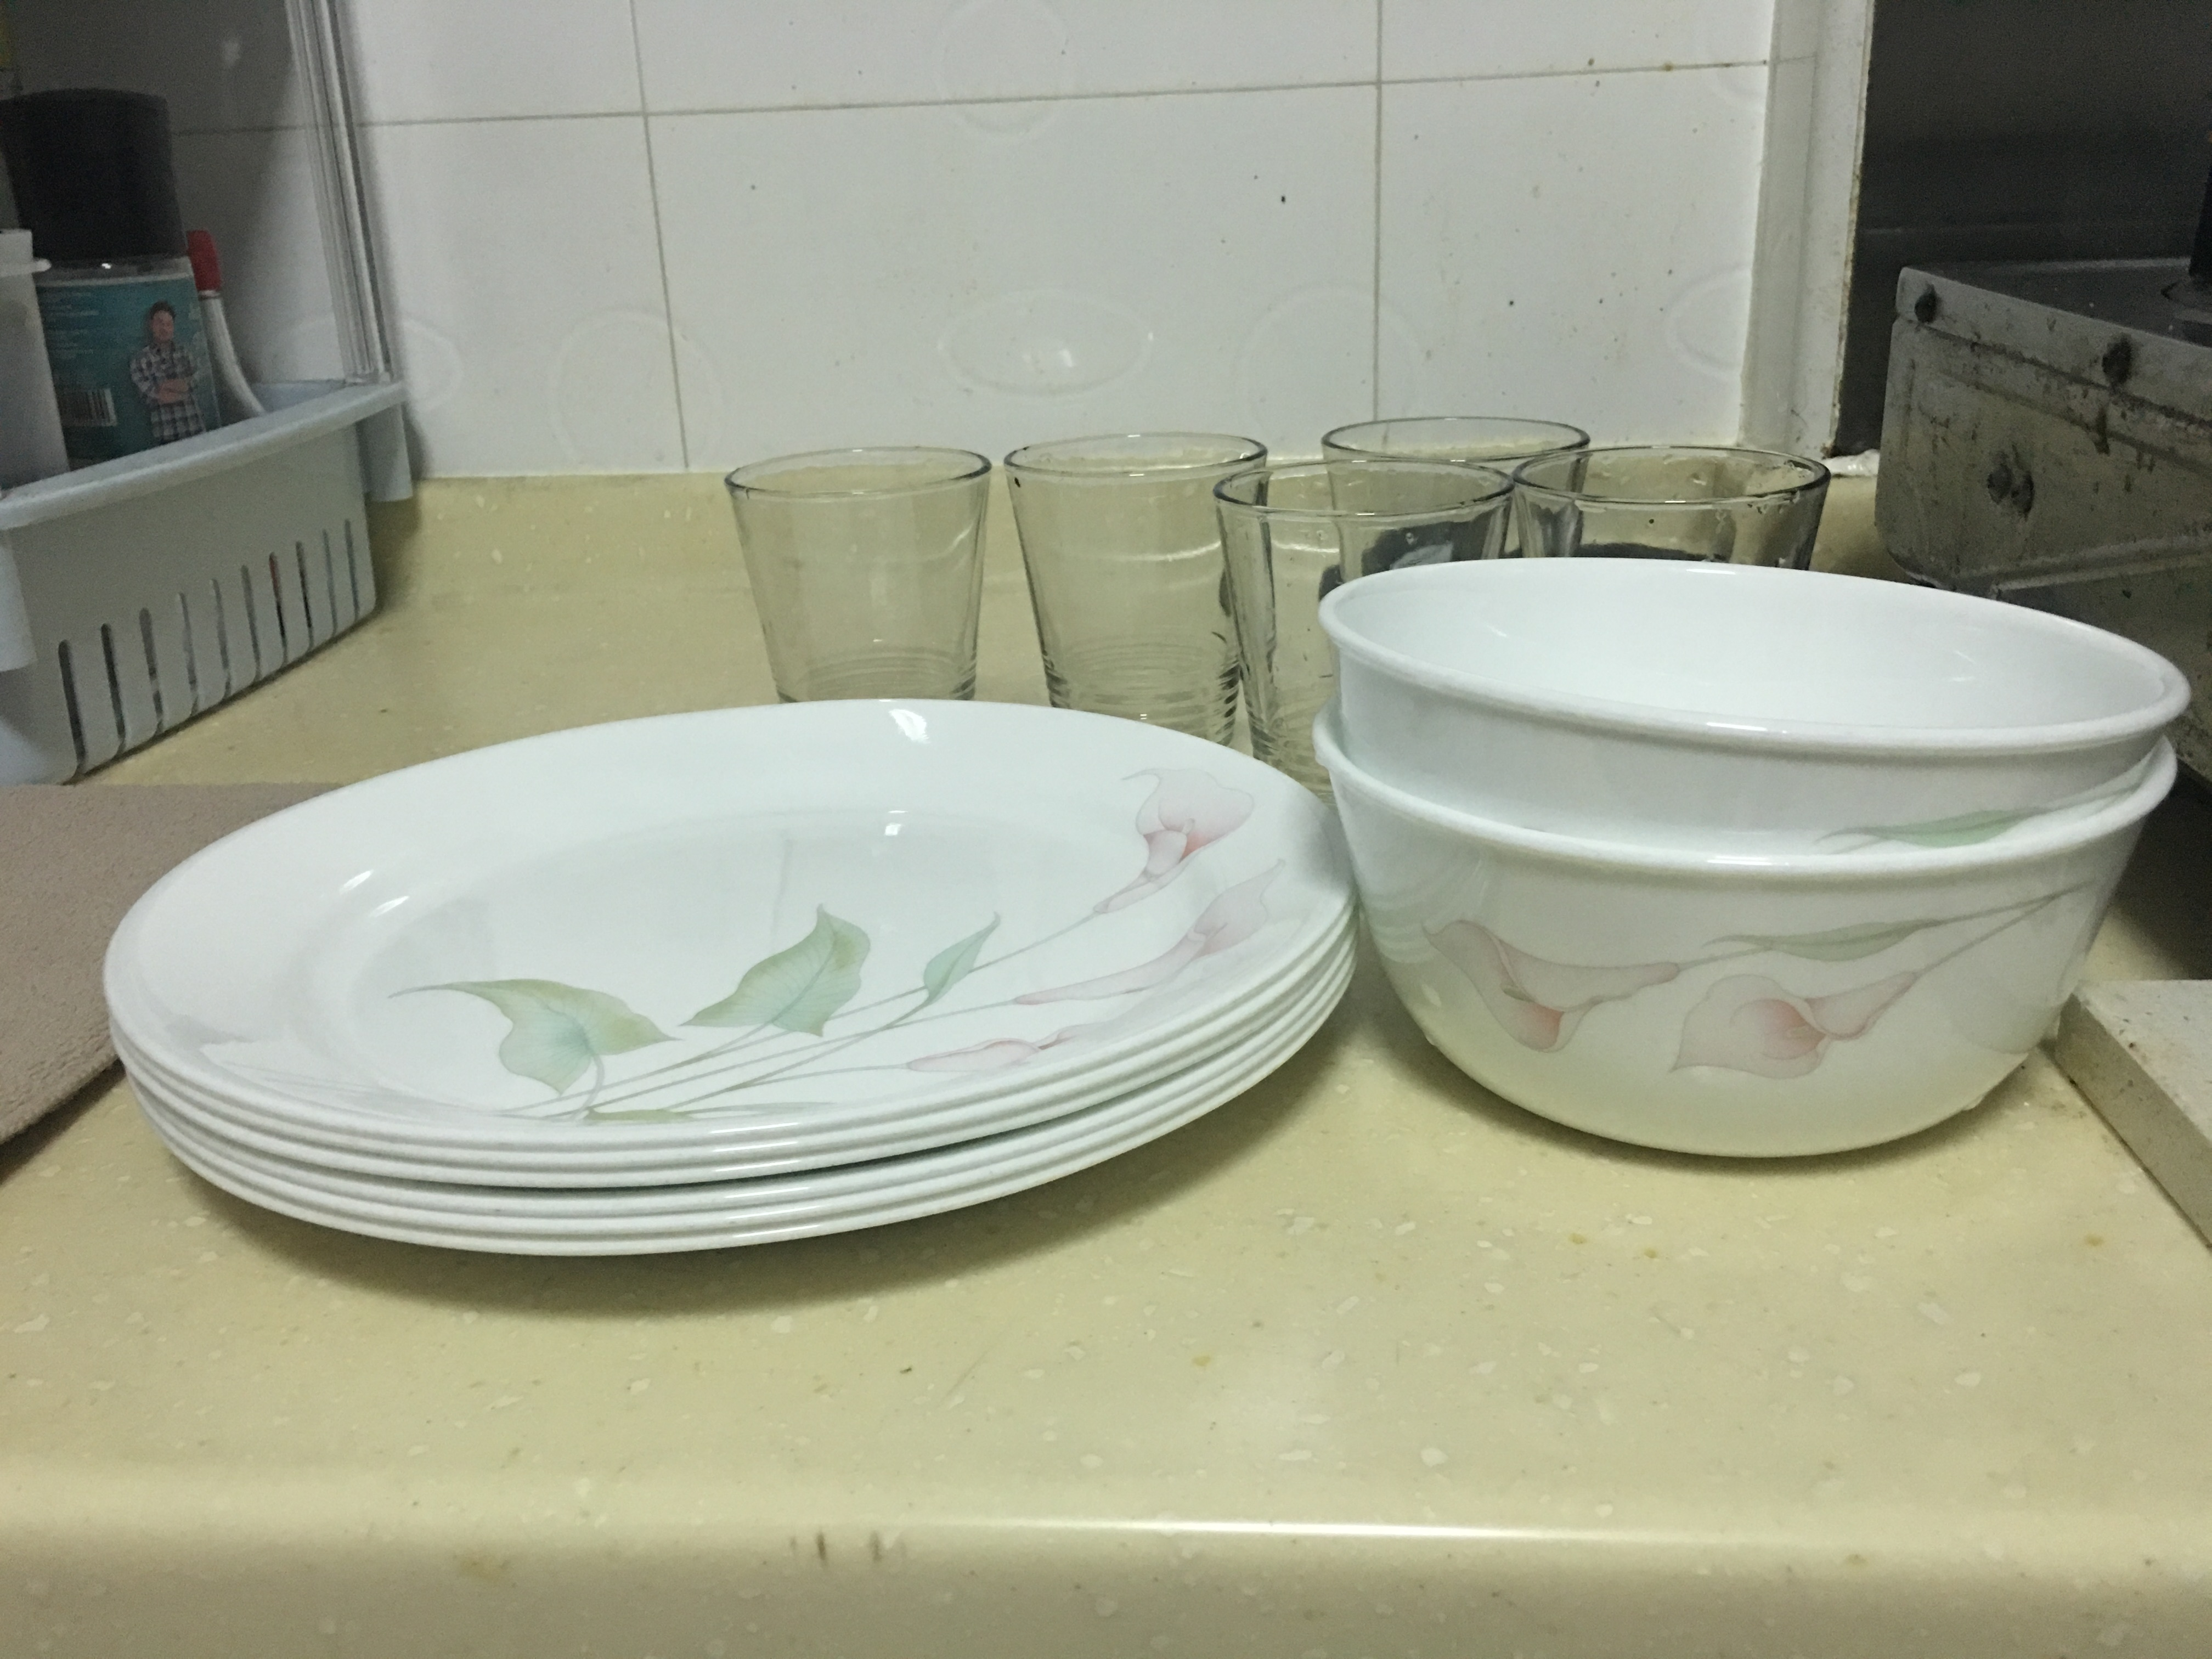 Corelle Plates, Corelle bowls and (no brand) drinking glasses